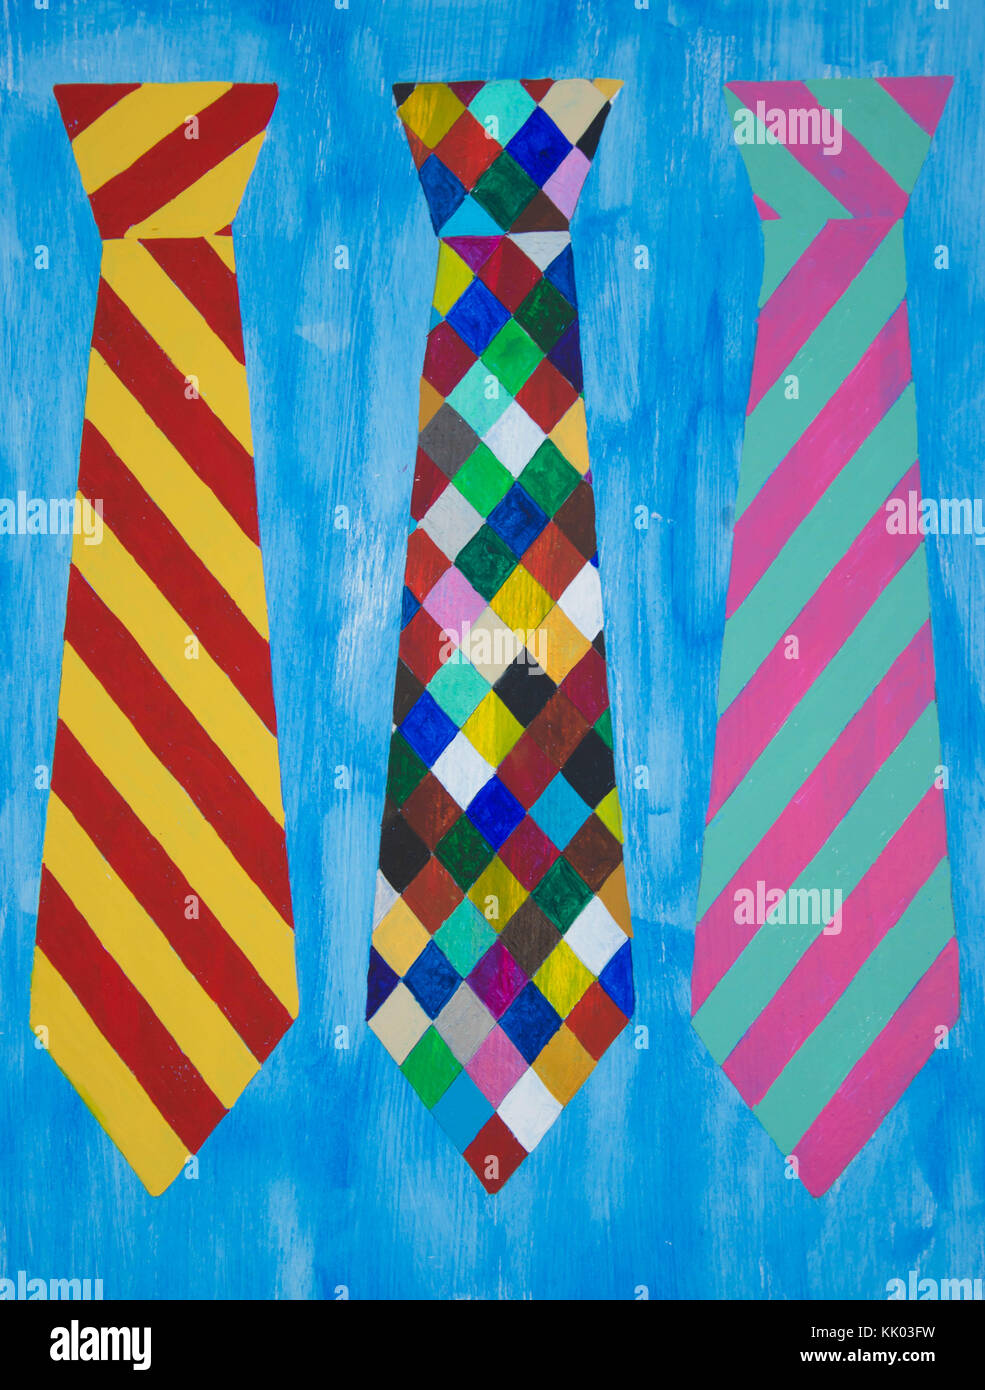 Wall Ties Stock Photos & Wall Ties Stock Images - Alamy